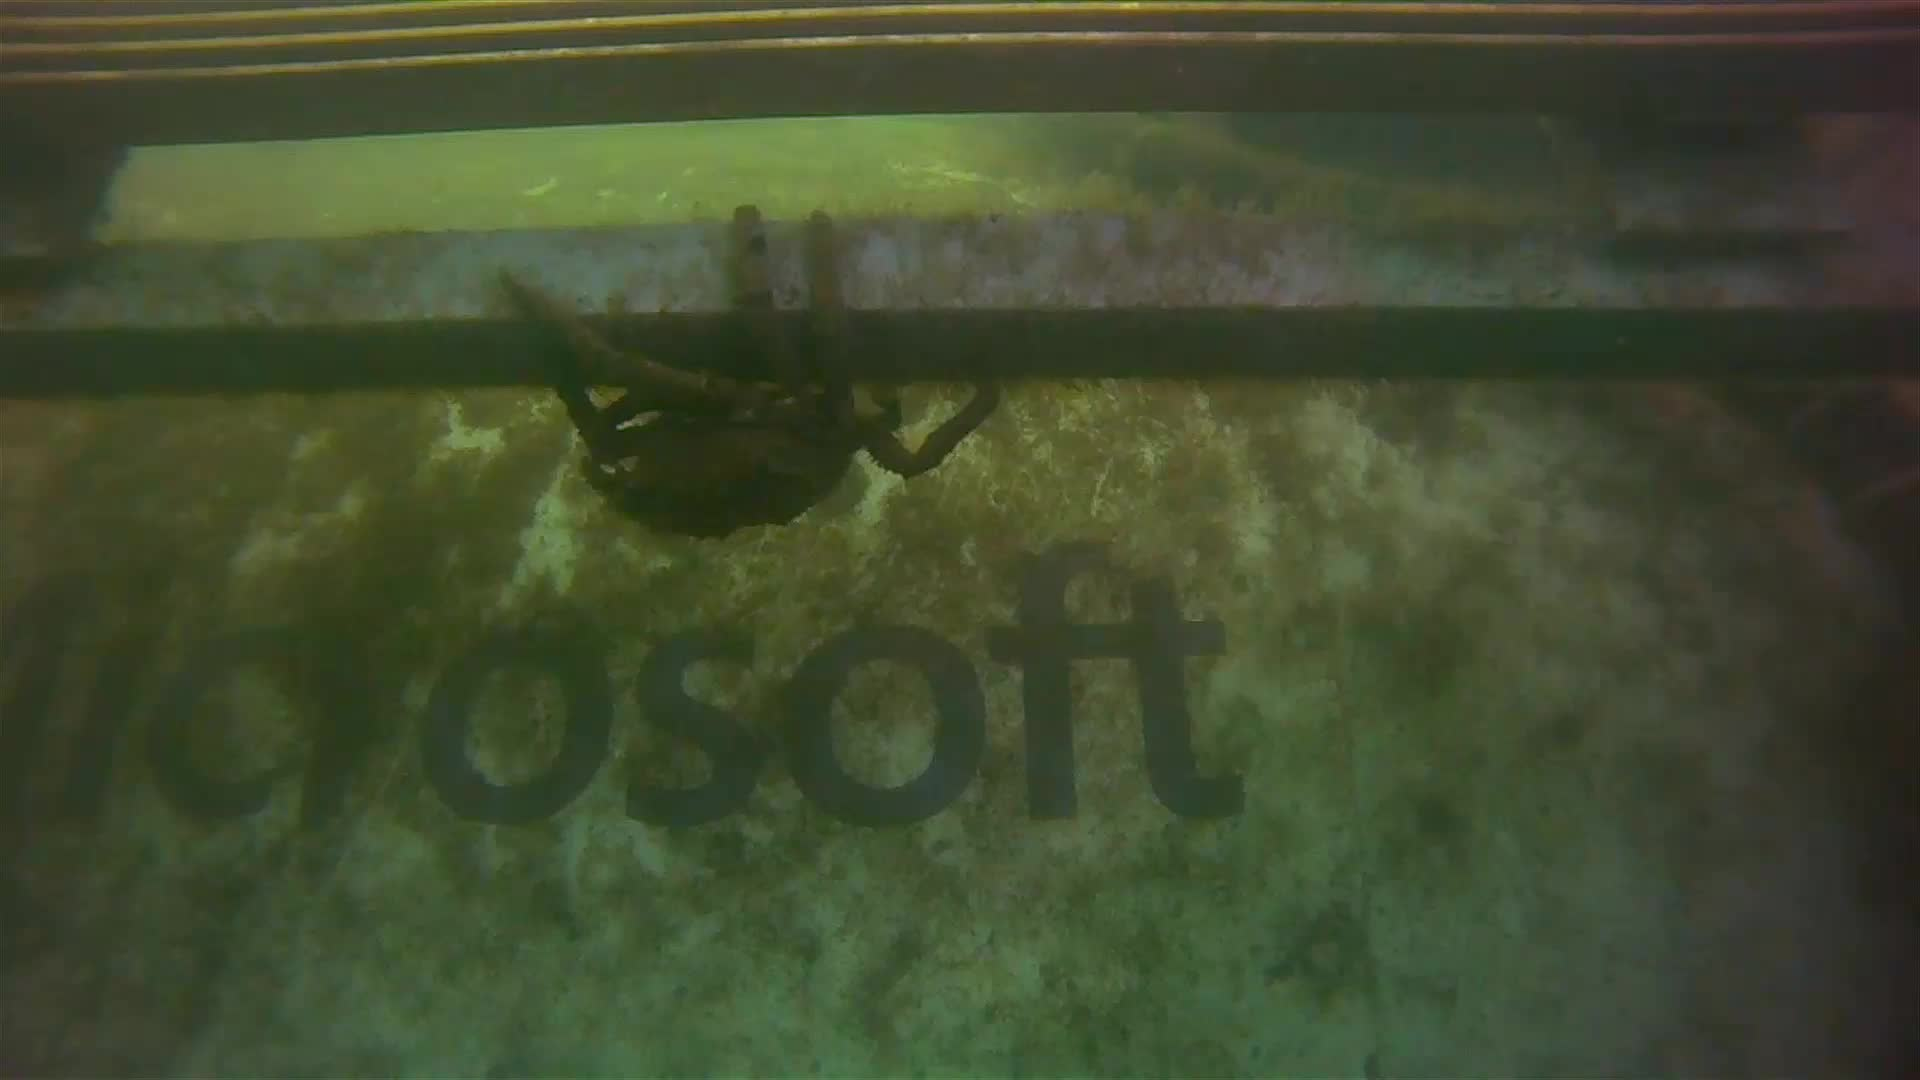 A crab crawls along the Leona Philpot, with the Microsoft logo in the background